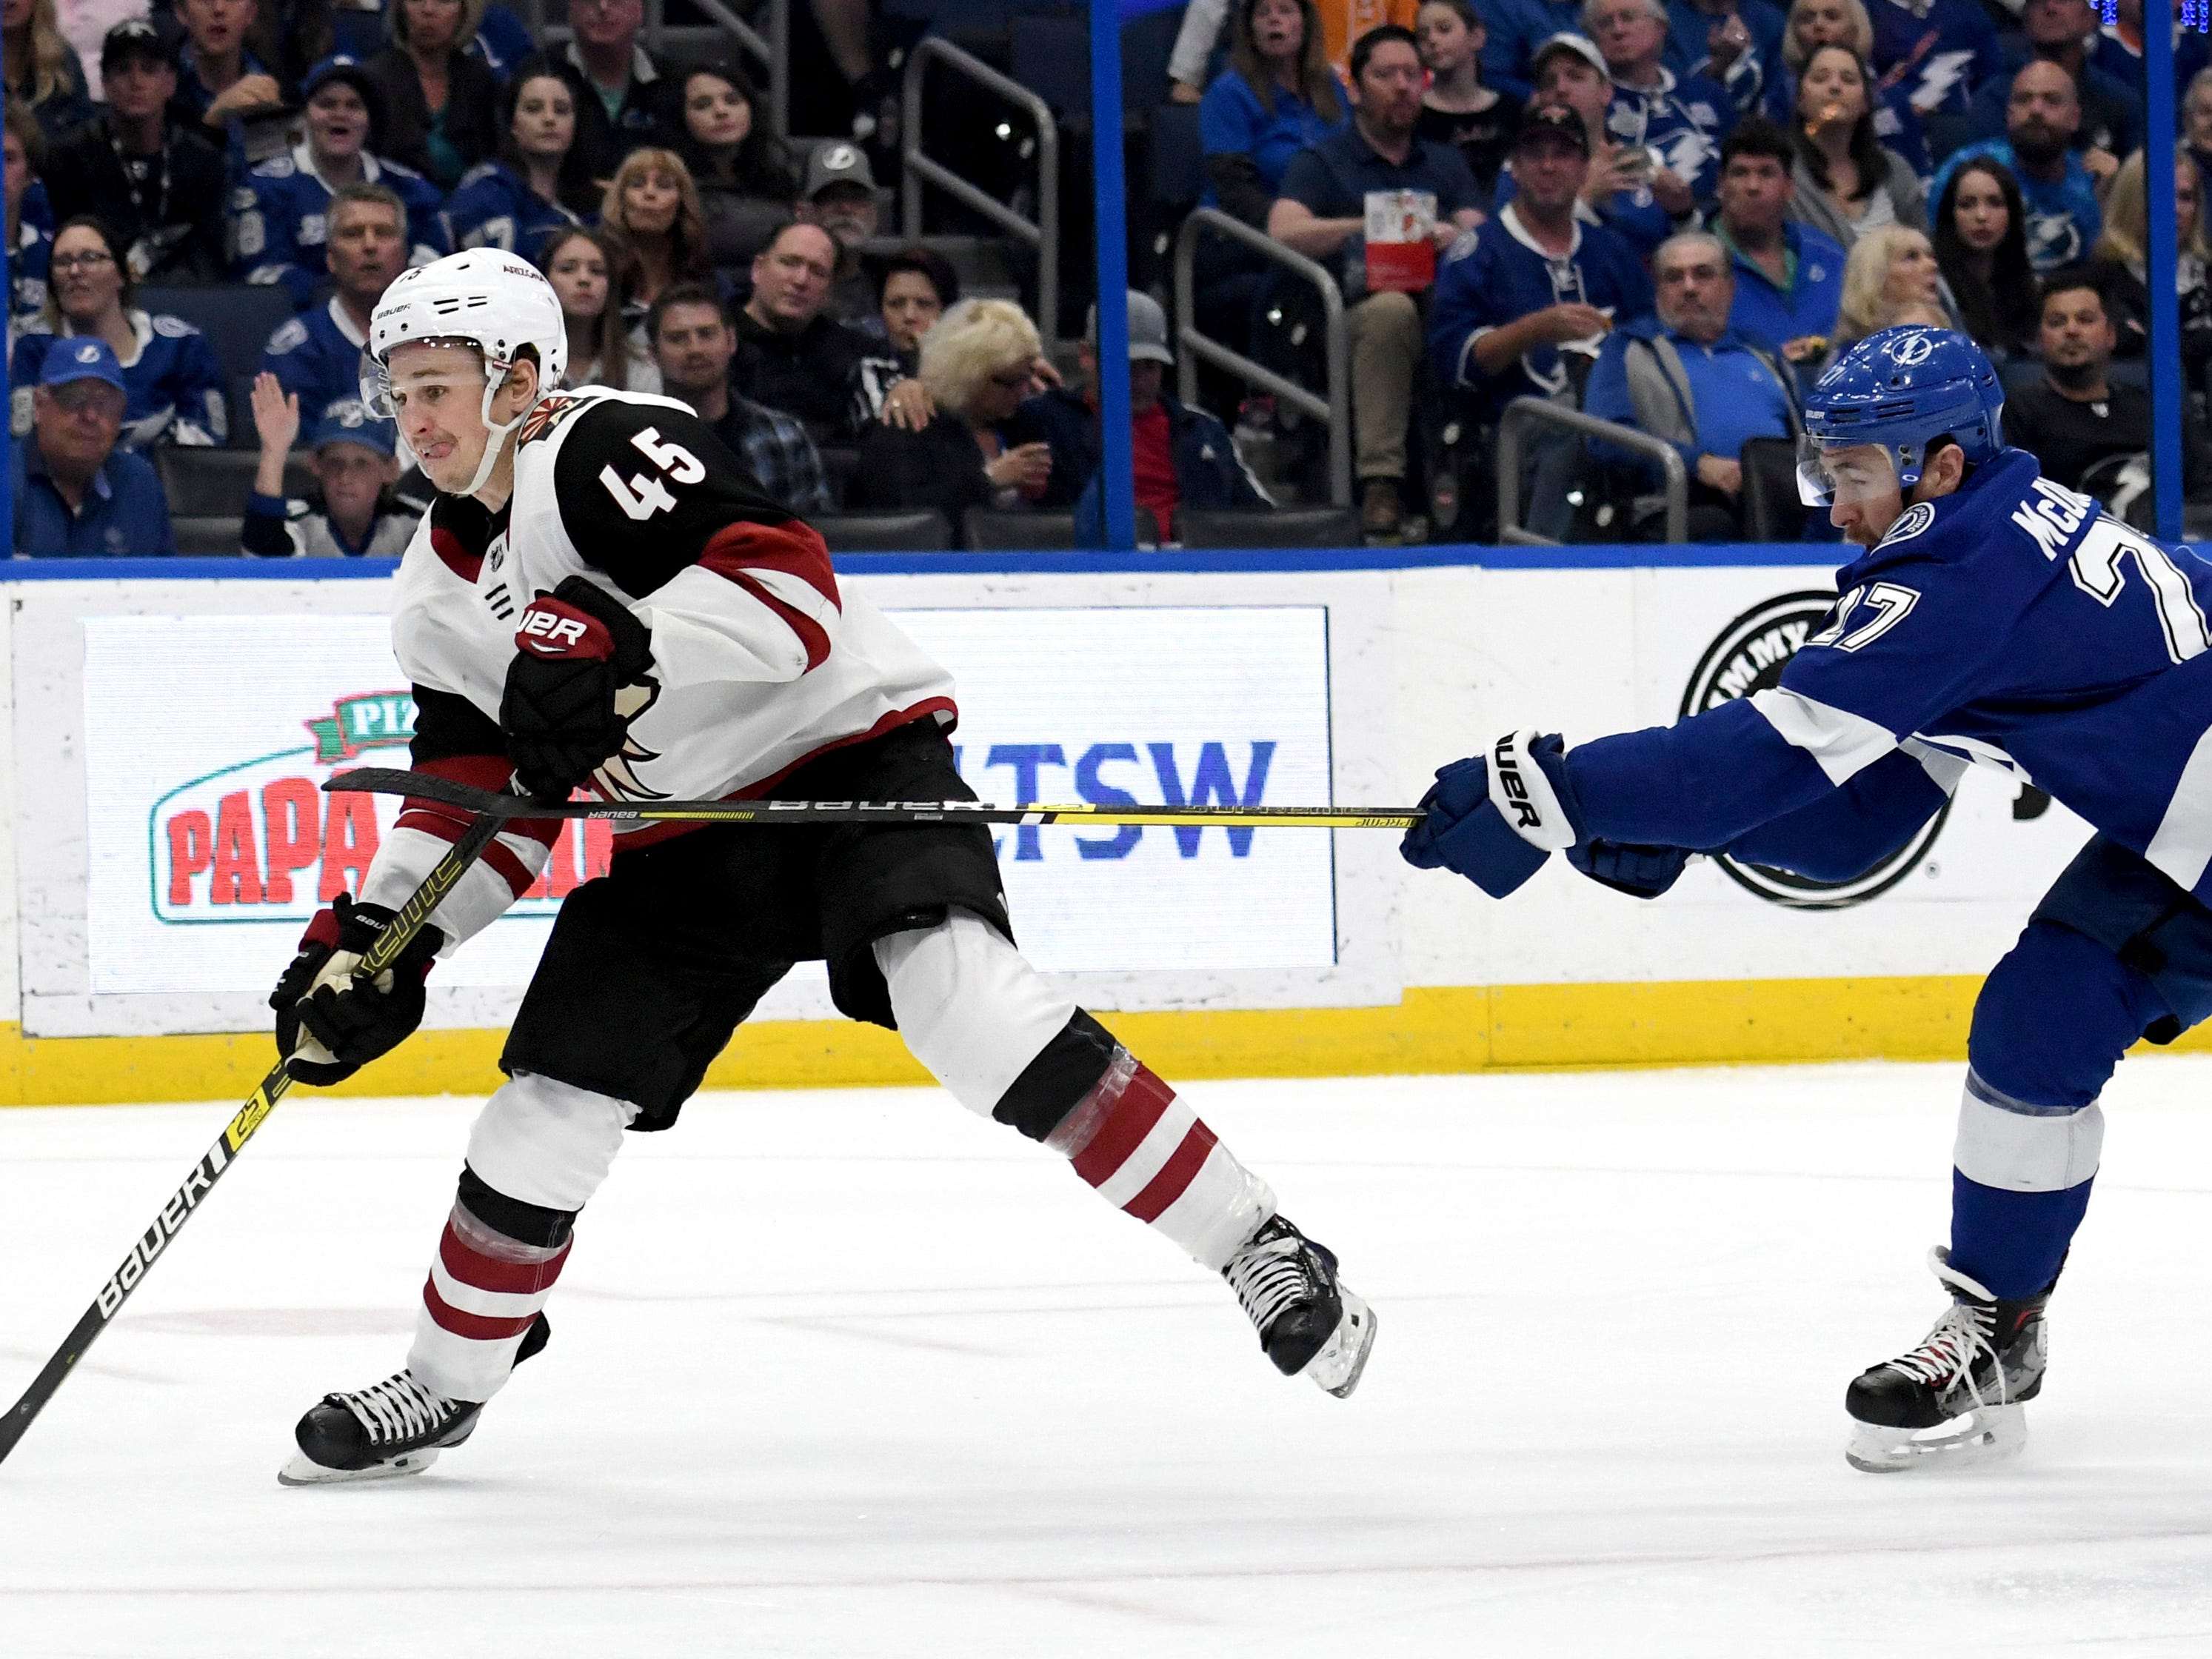 Arizona Coyotes right wing Josh Archibald (45) shoots as he gets past Tampa Bay Lightning defenseman Ryan McDonagh (27) during the first period of an NHL hockey game Monday, March 18, 2019, in Tampa, Fla.